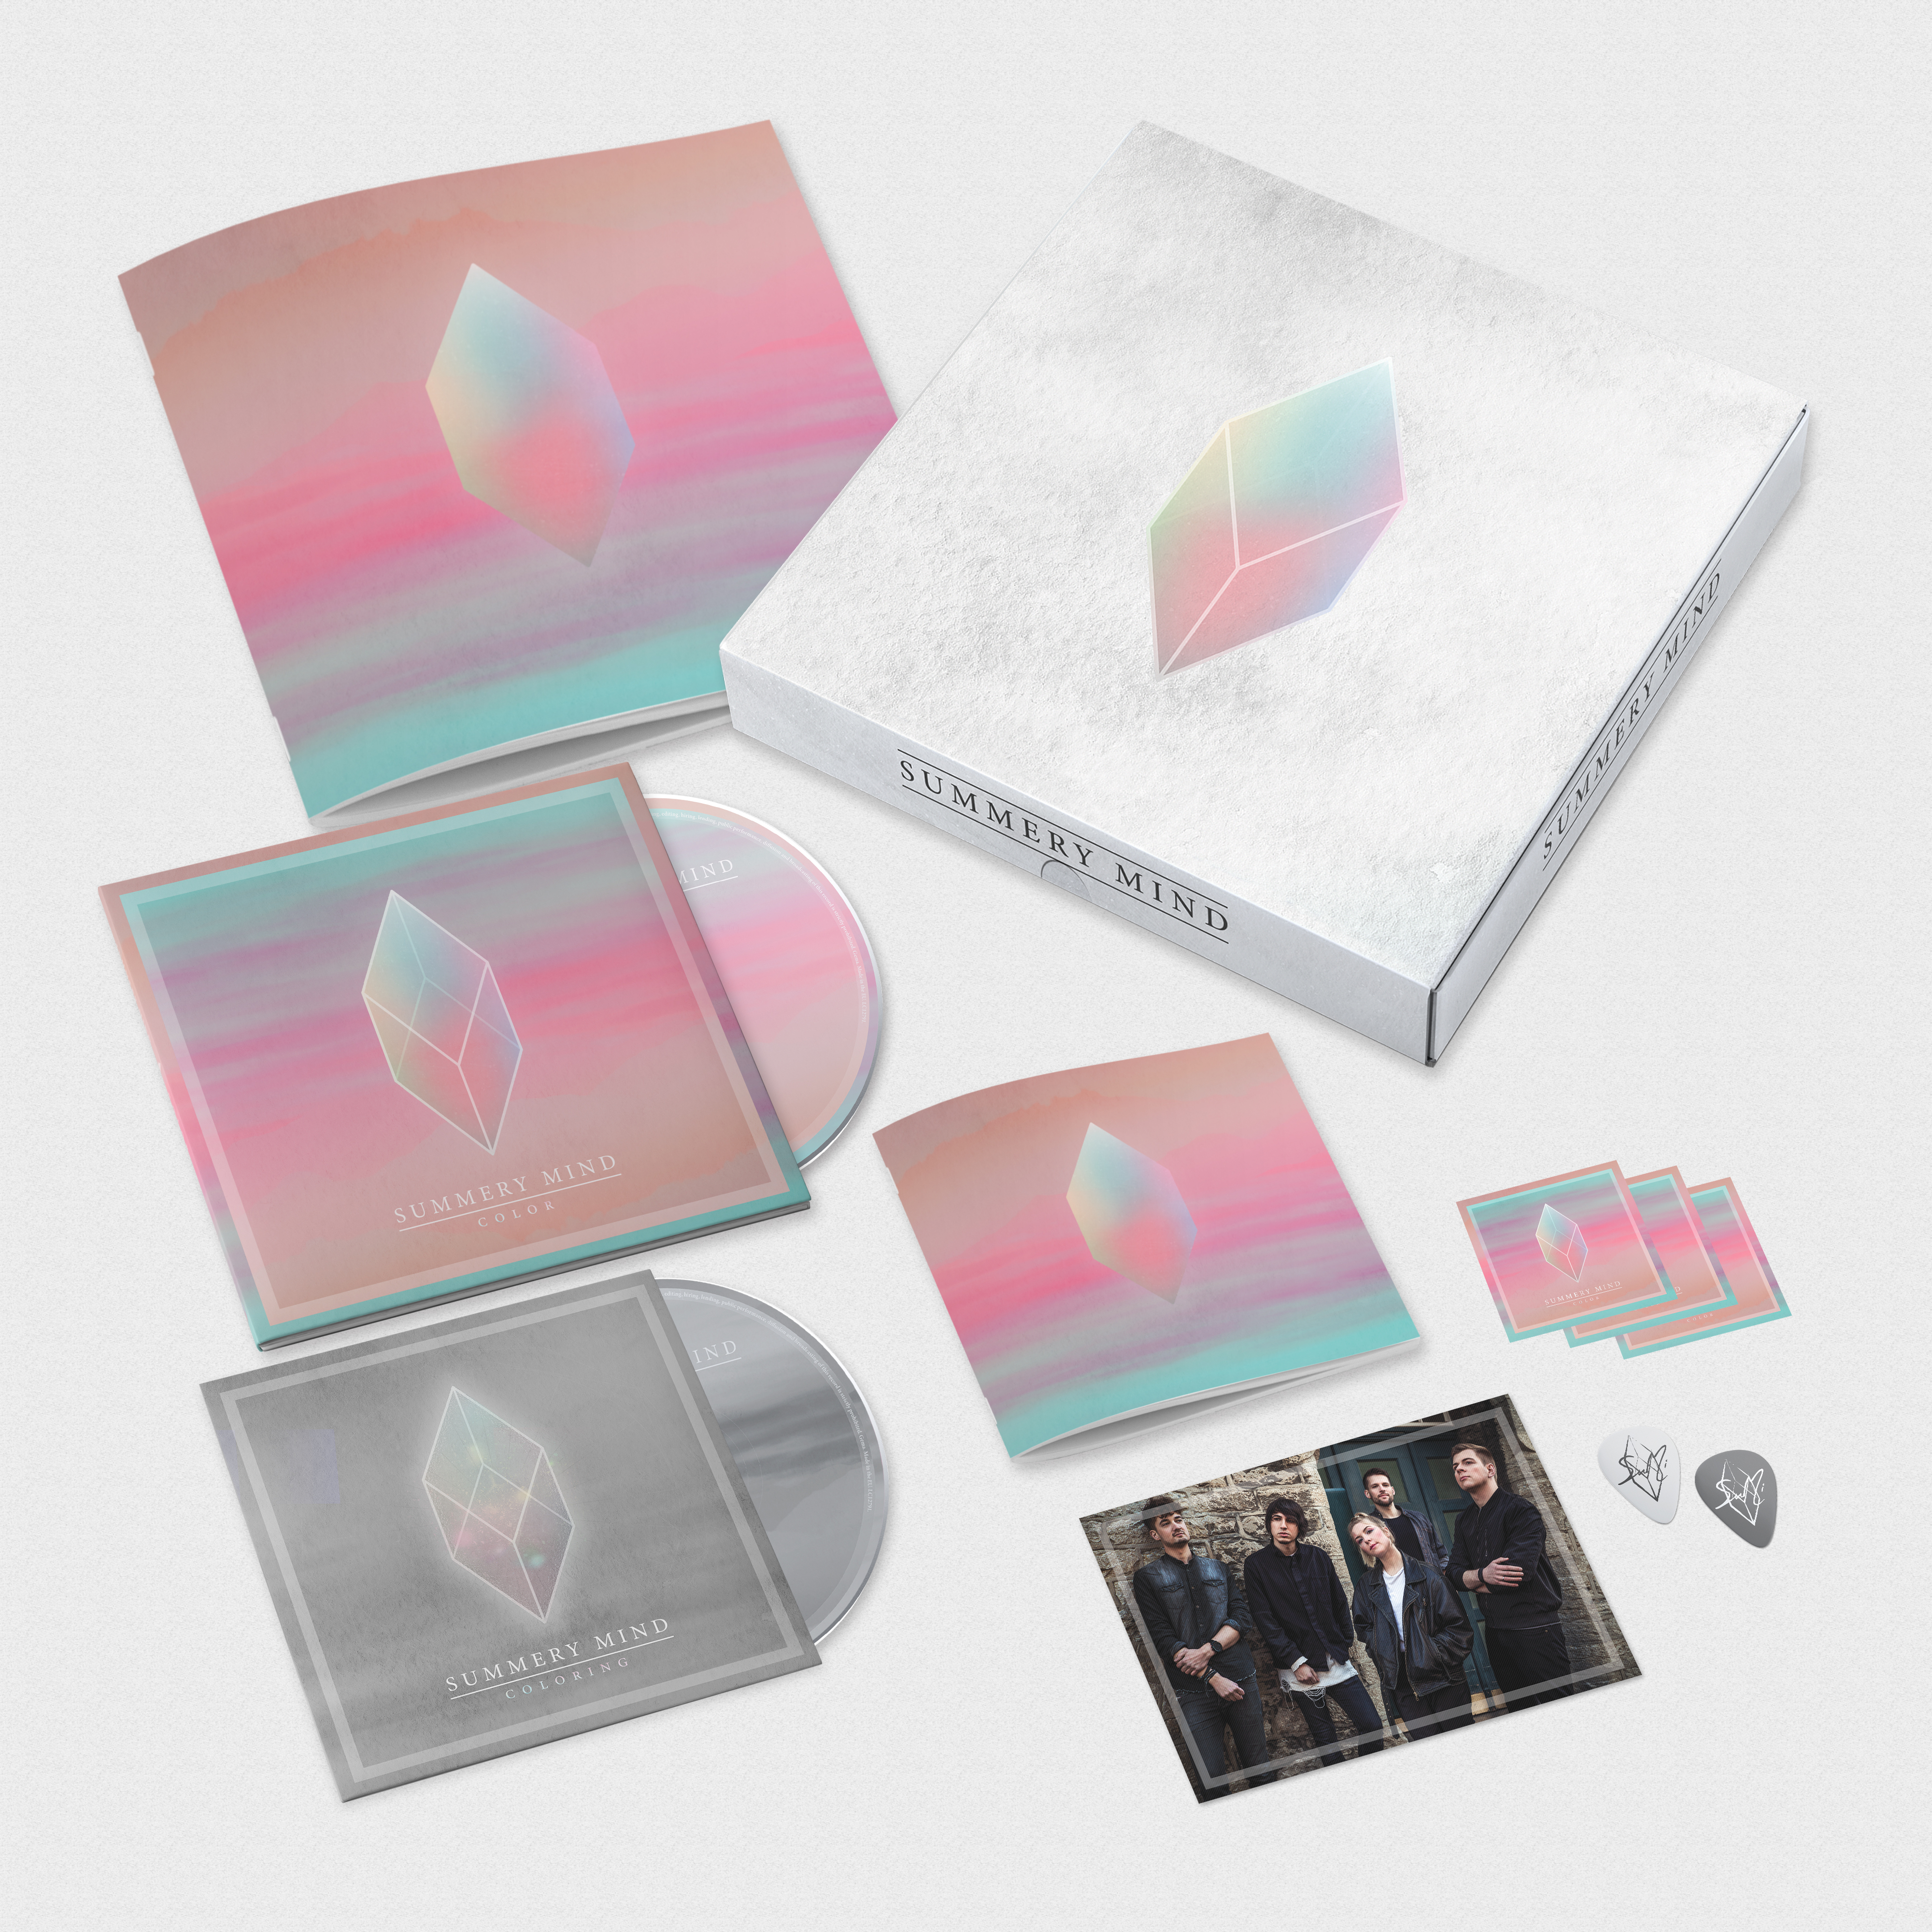 LIMITED DELUXE BOX